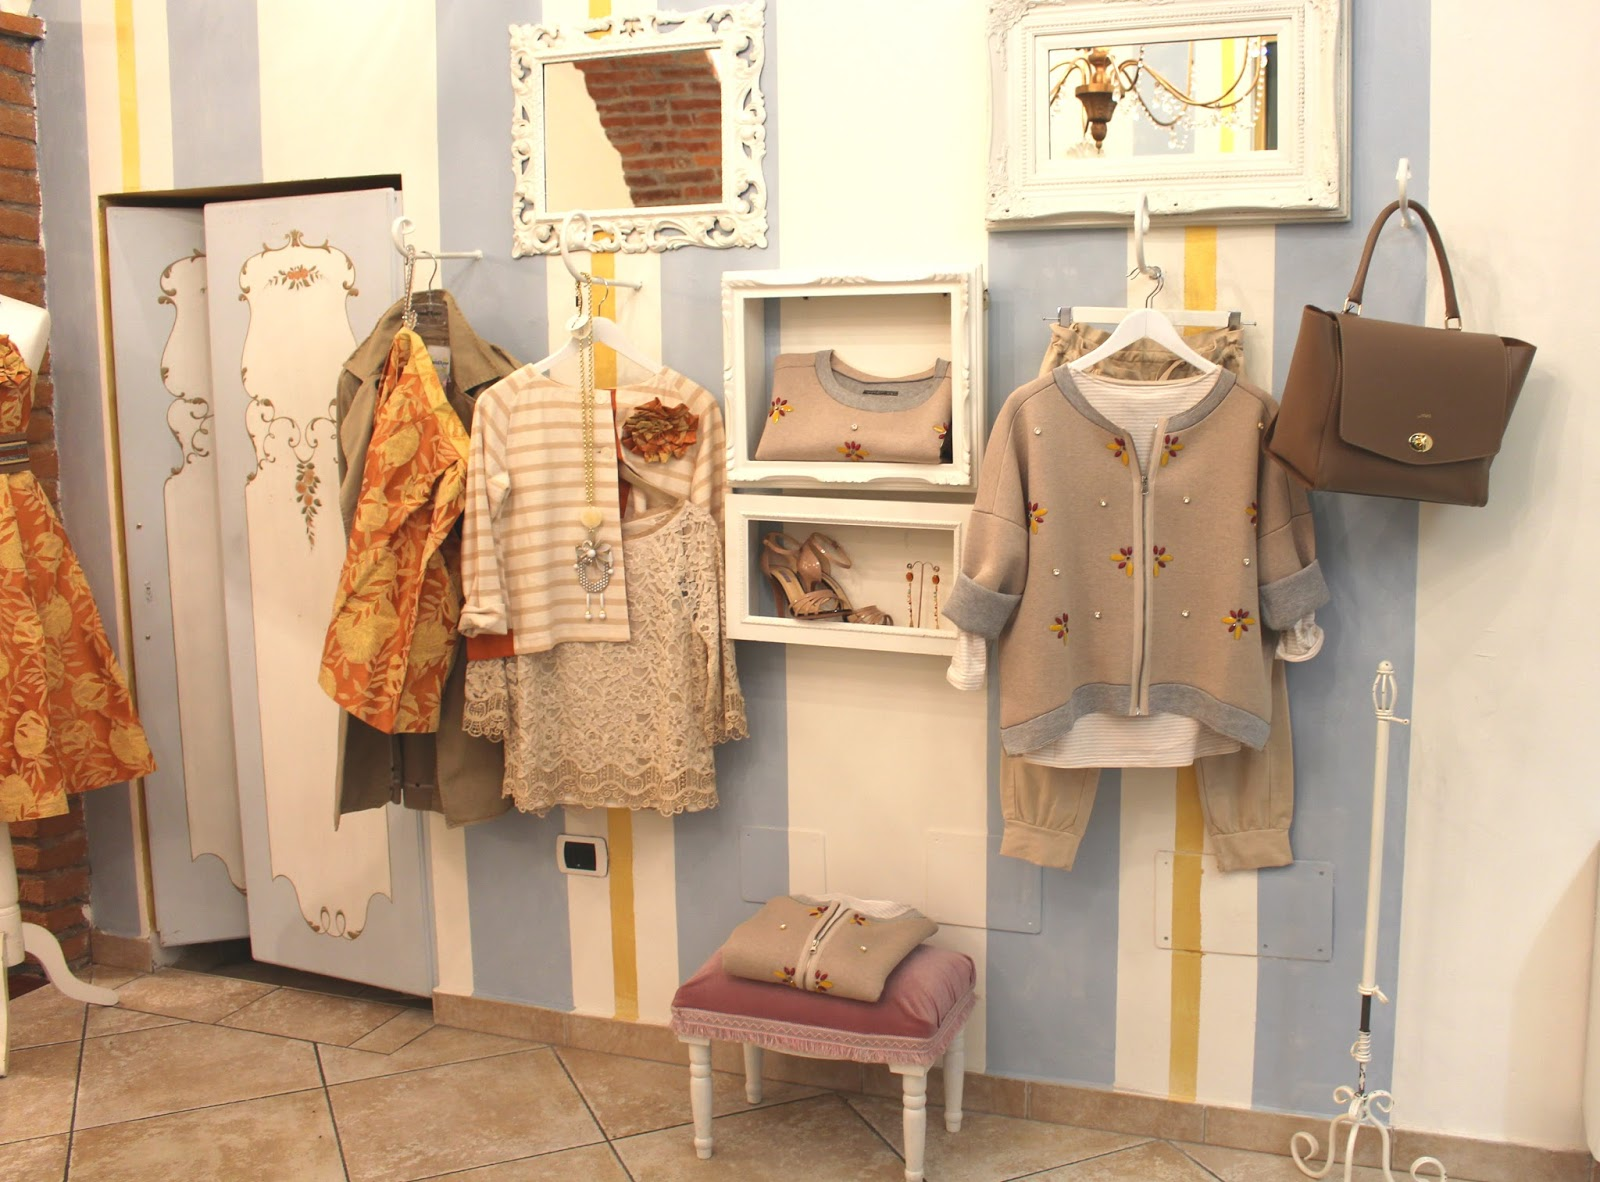 [Lifestyle] SV Boutique: non il solito shopping [Chiccheria n.ro 9]